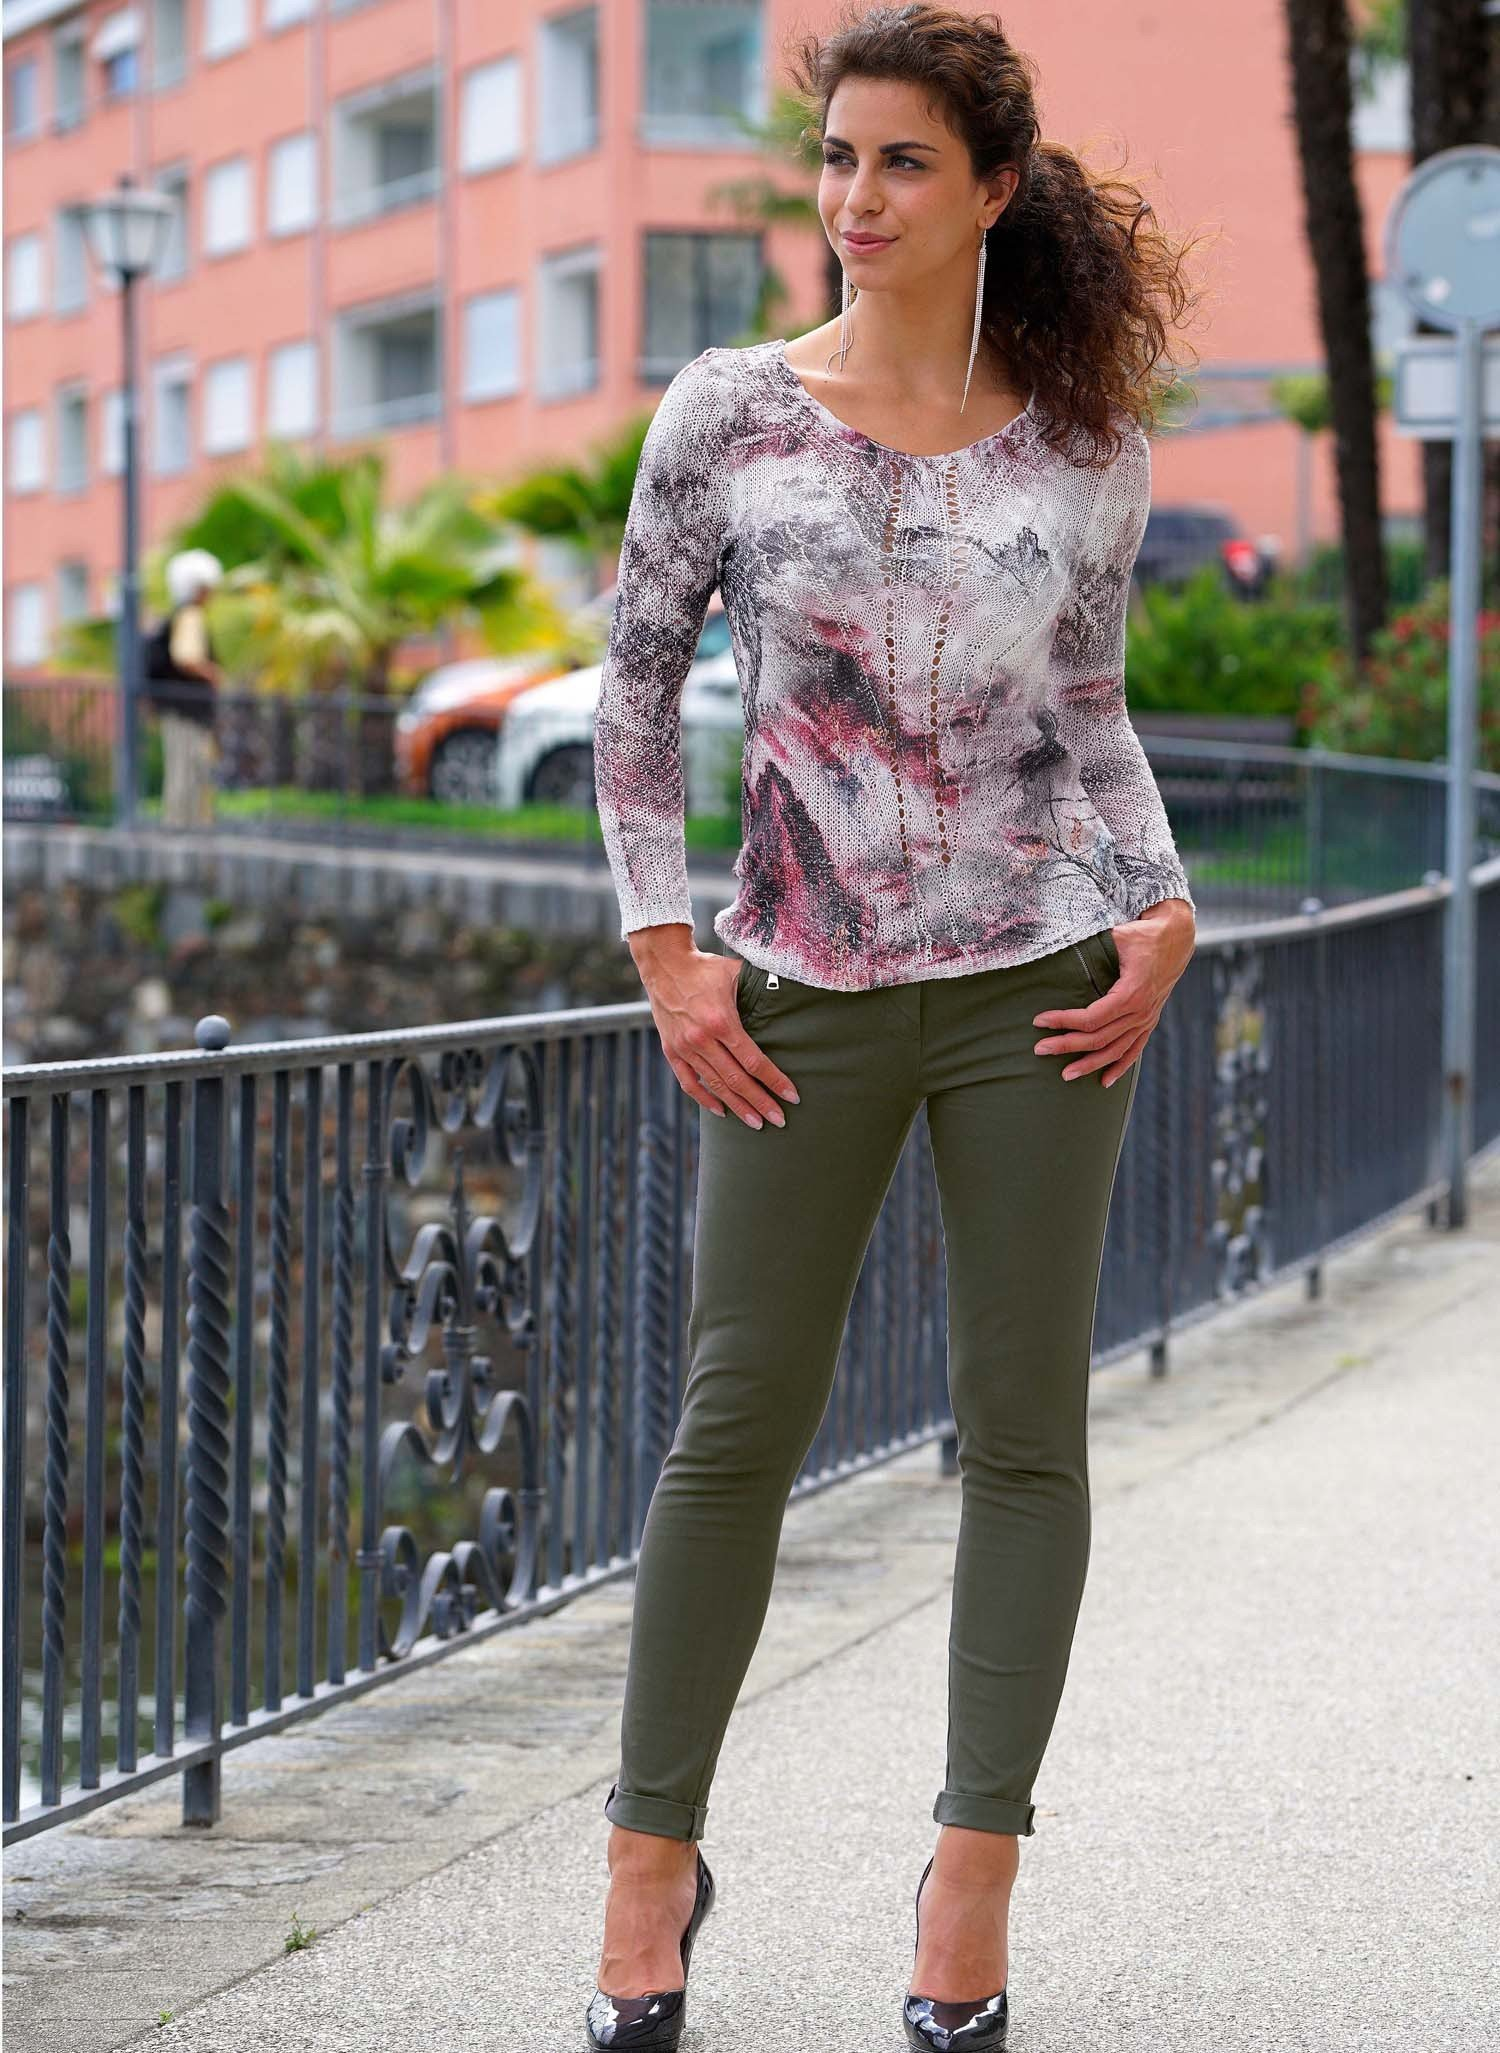 D-Pullover,Zopfmuster rosa/ant XL 134 - 2 - Ronja.ch